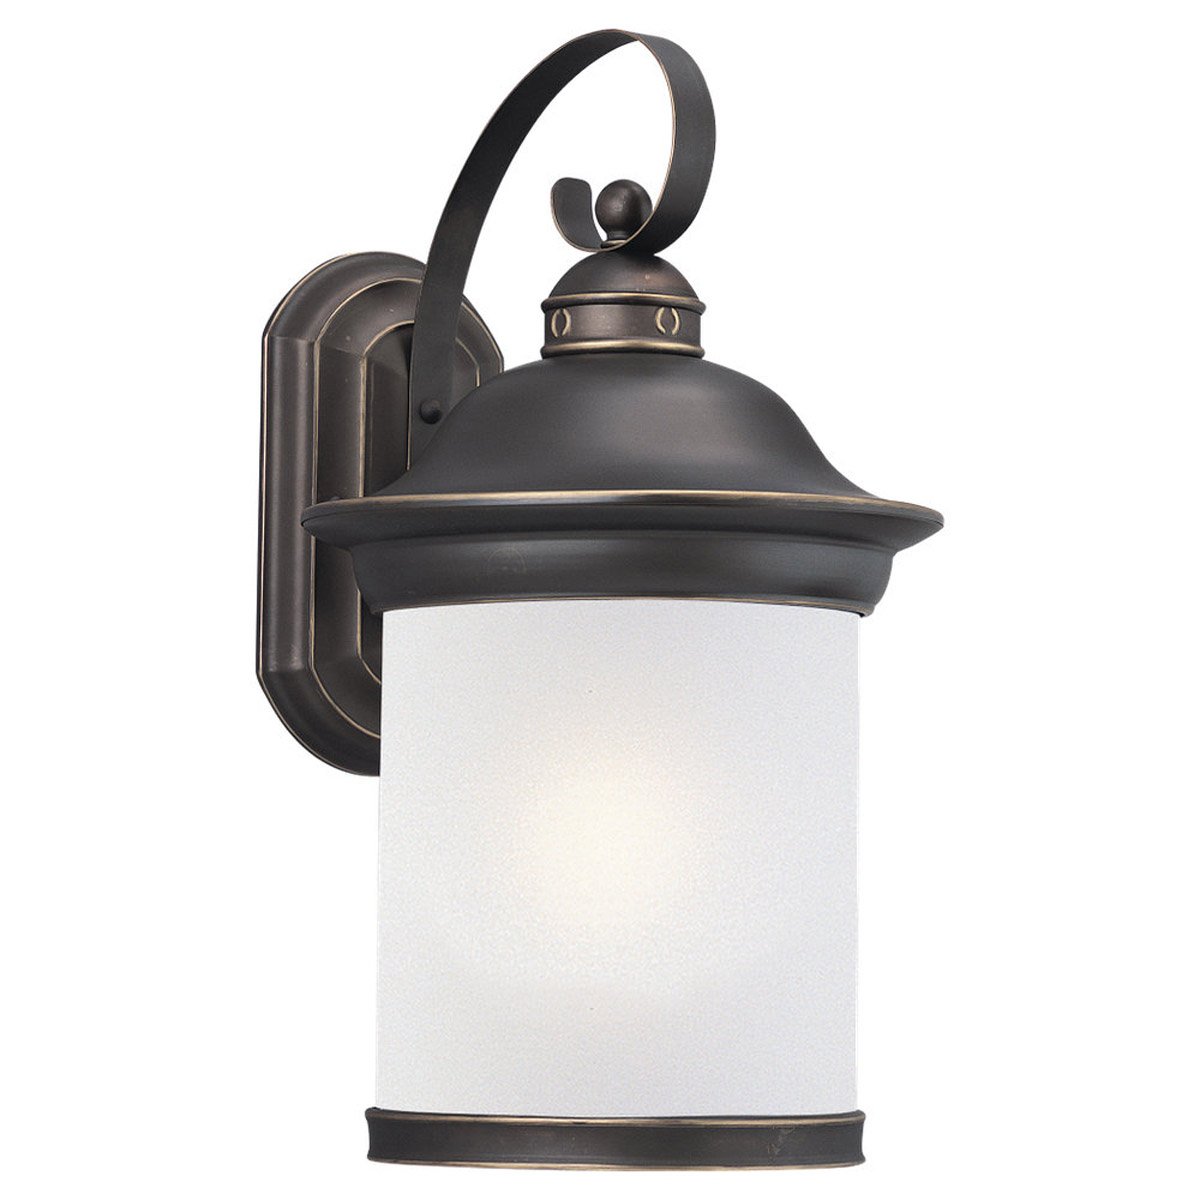 Sea Gull Lighting Hermitage 1 Light Outdoor Wall Lantern in Antique Bronze 89193PBLE-71 photo